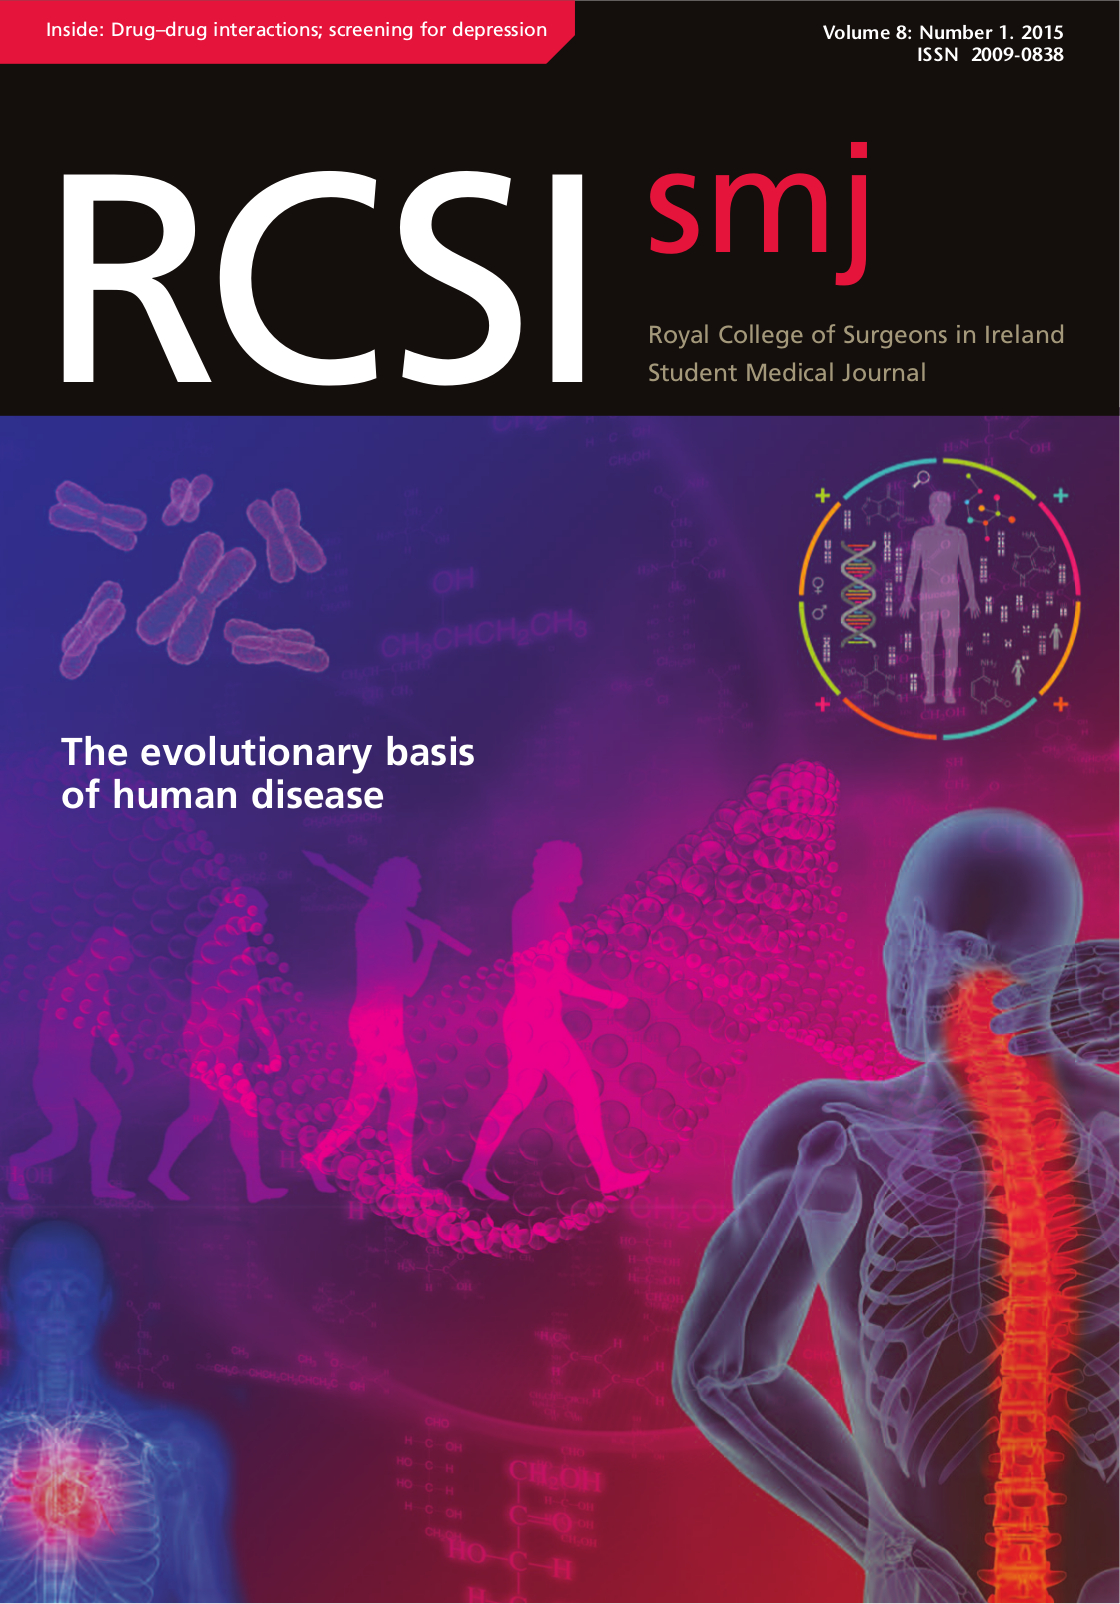 RCSIsmj Vol 8 Cover